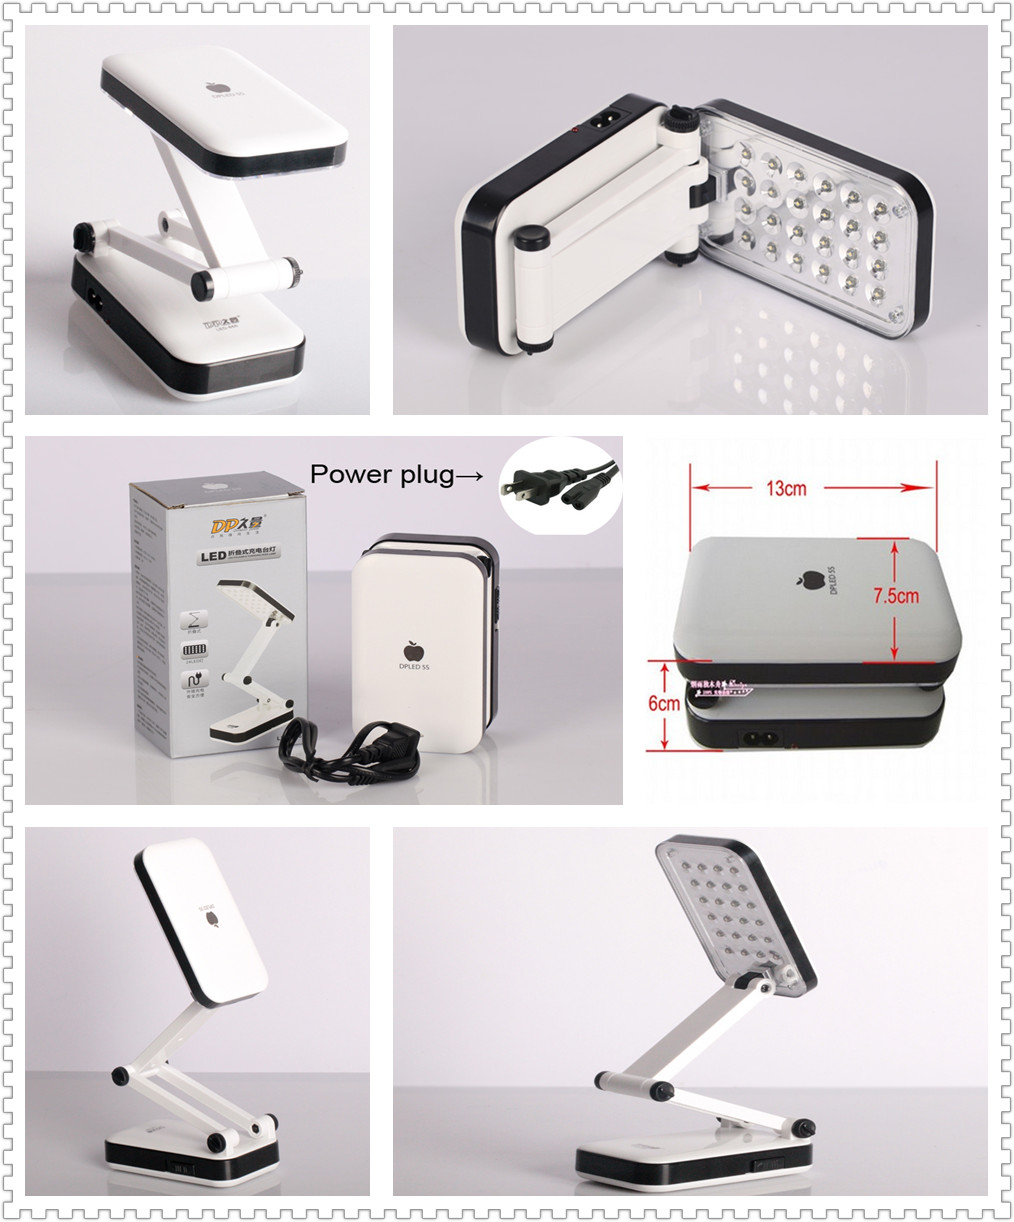 Edora Lamp Miera Foldable Desk Charging CollectionLed EYD2IWH9